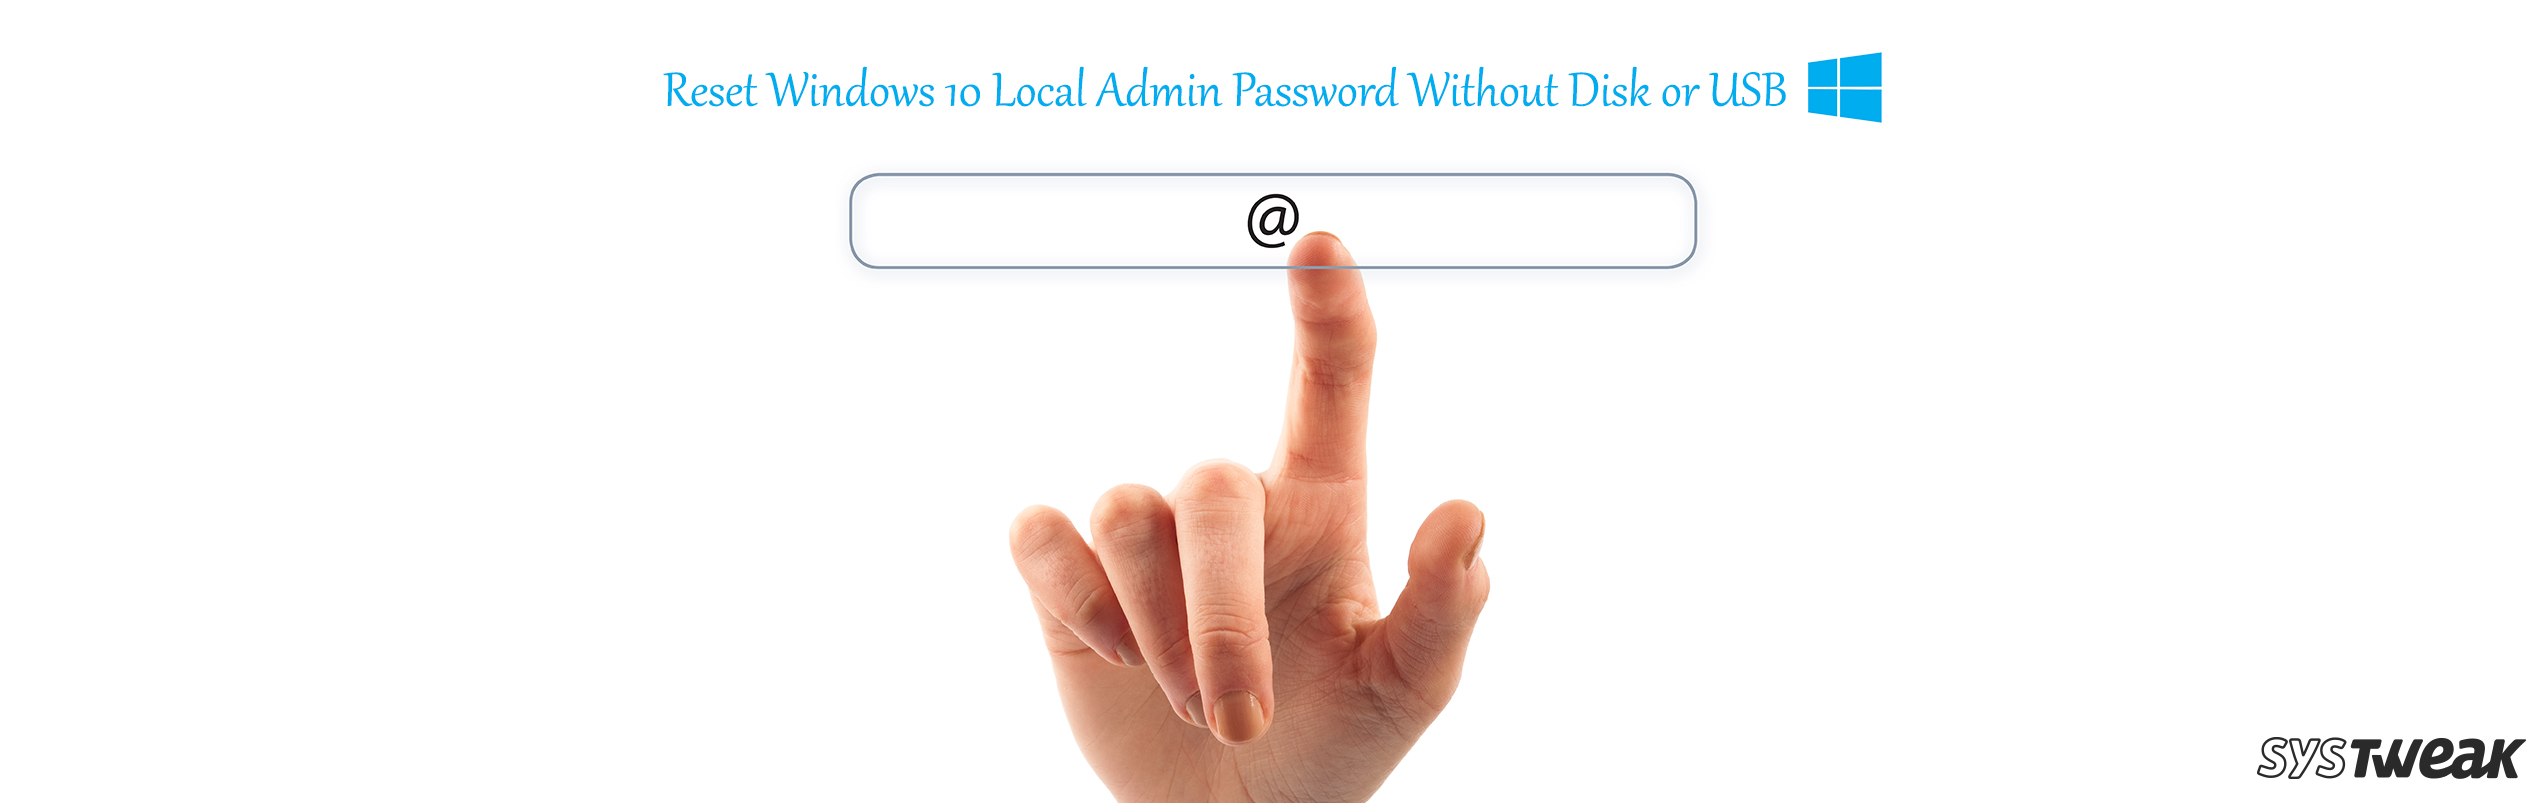 How To Reset Windows 10 Local Admin Password Without Disk or USB